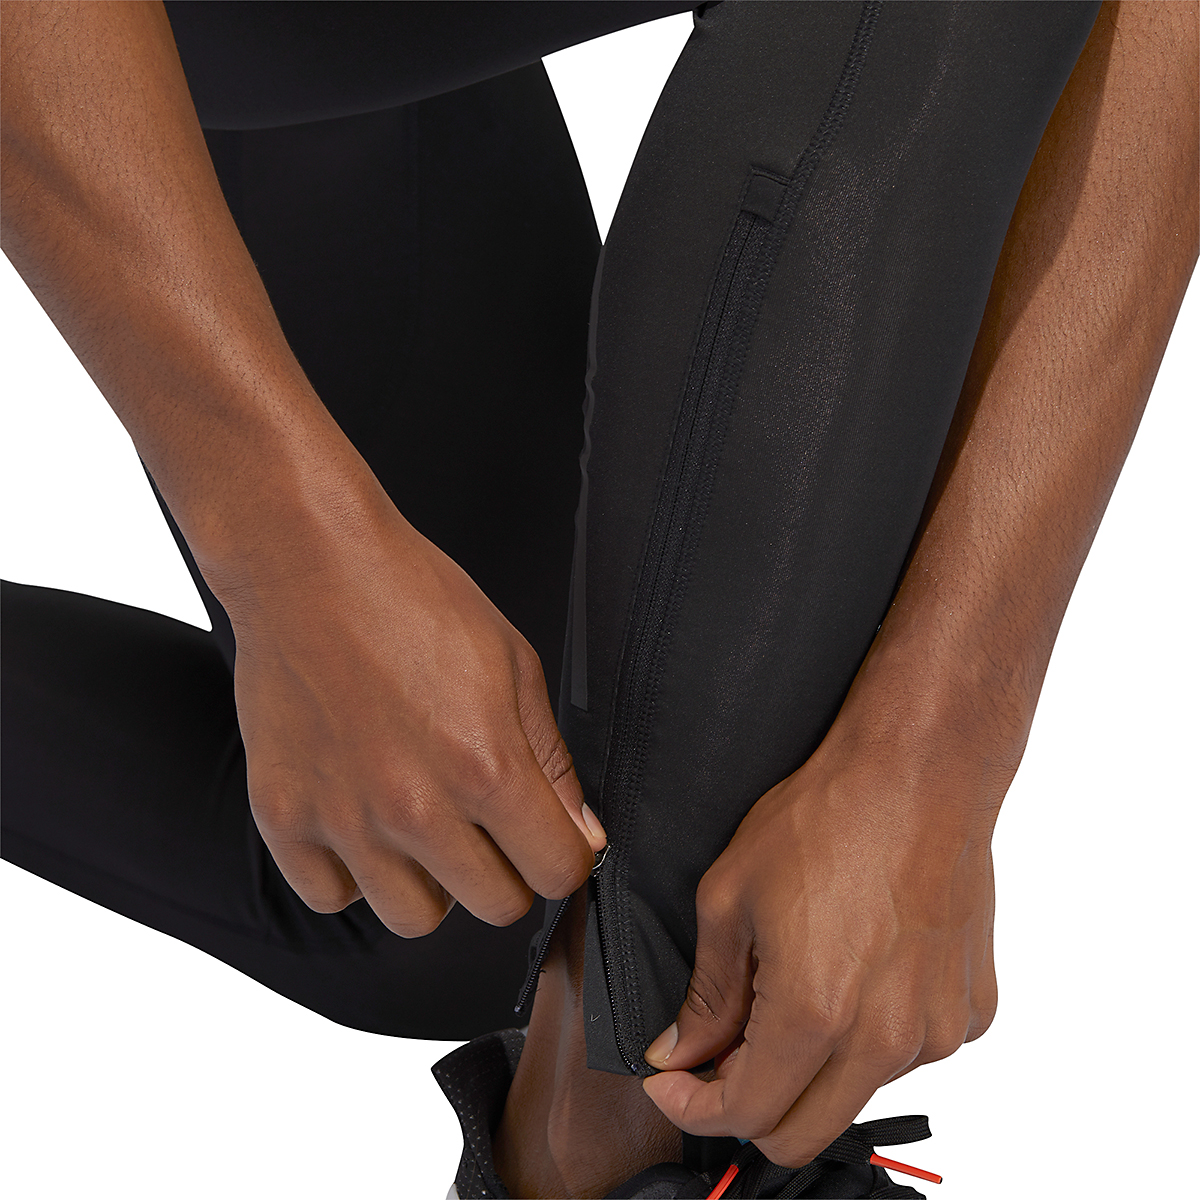 Men's Adidas Own The Run Long Tights - Color: Black - Size: XS, Black, large, image 5